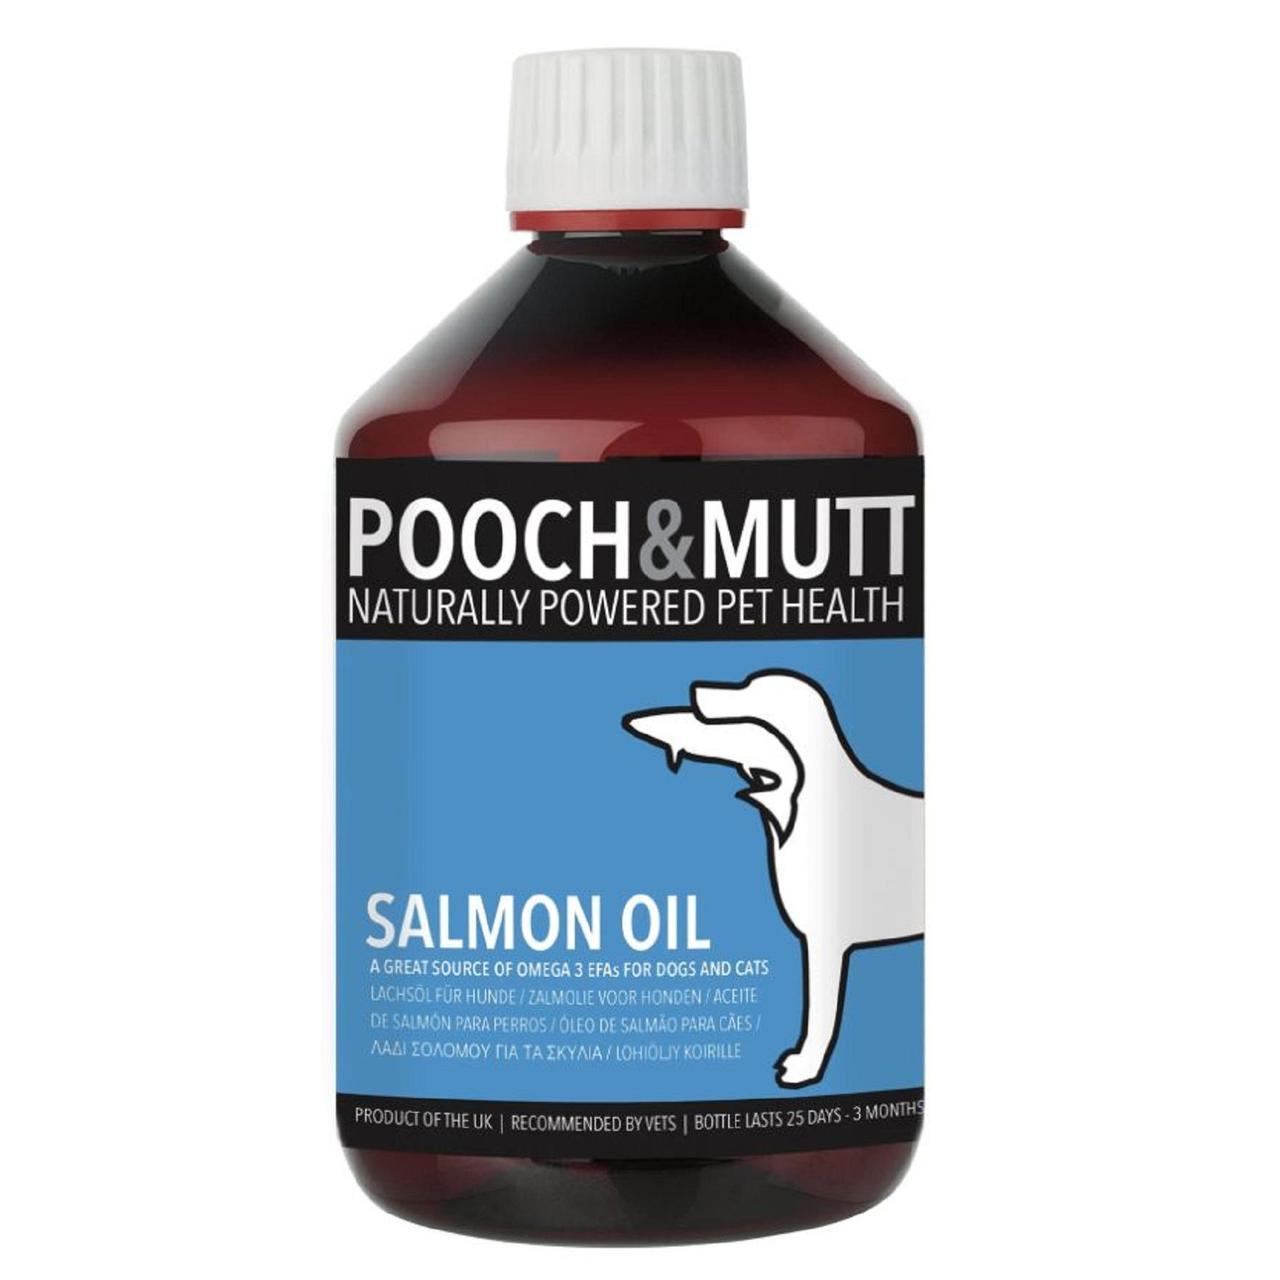 pooch and mutt salmon oil